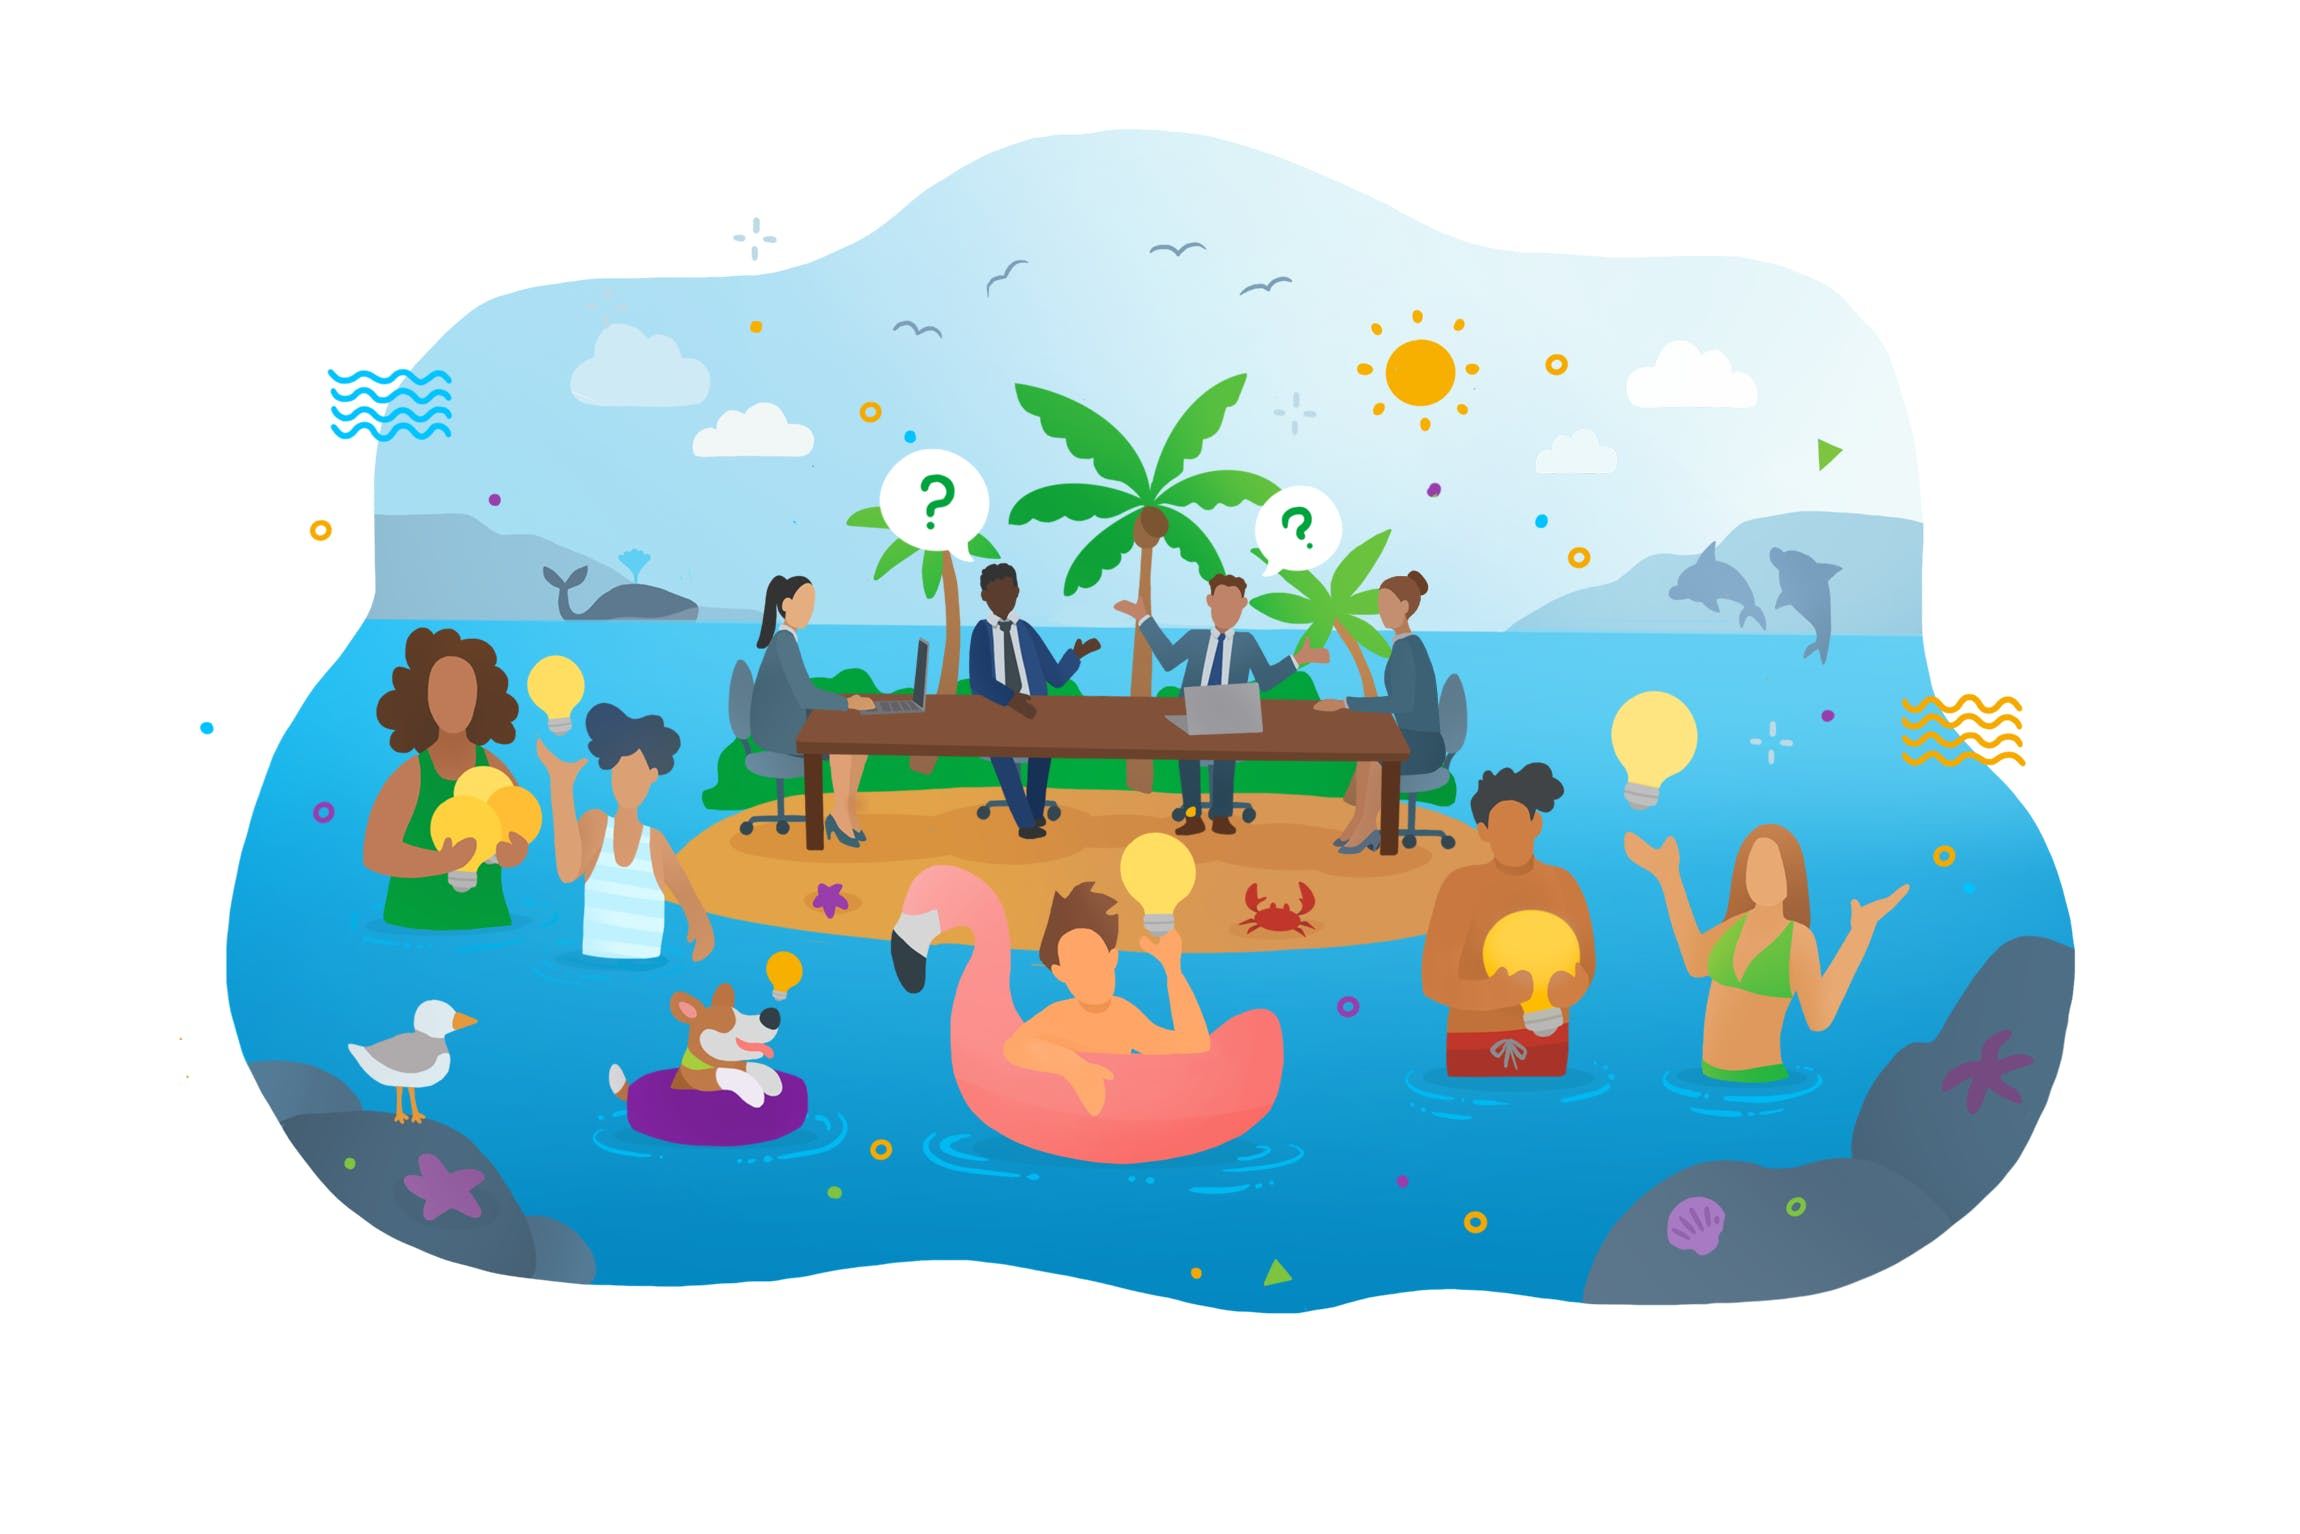 Cartoon illustration of people in the water while a business meeting takes place on the island.